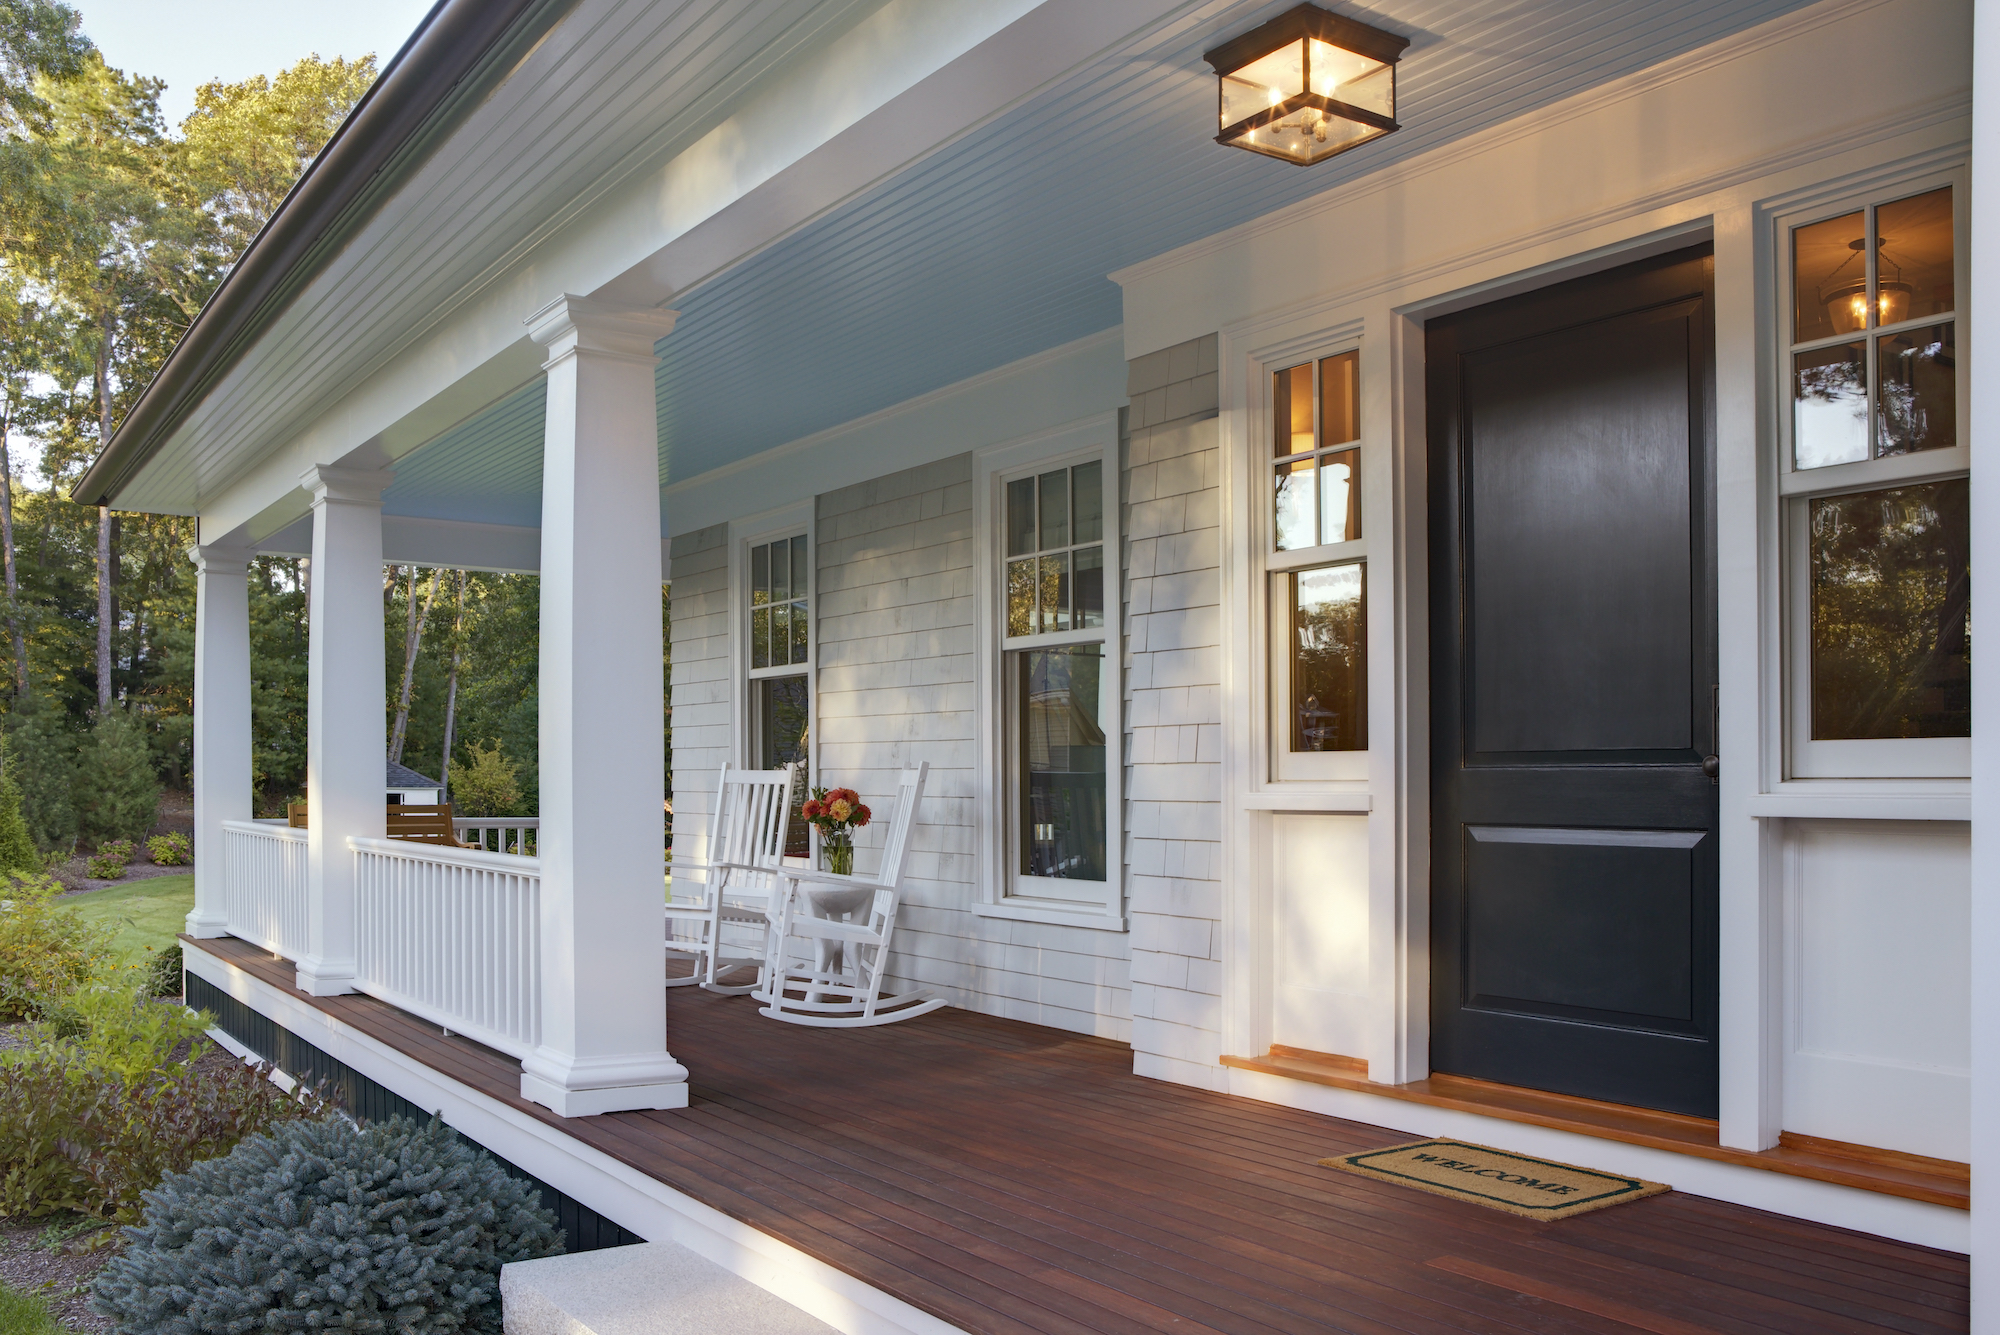 Homebuying Trends 2021, Exterior Lighting on Porch